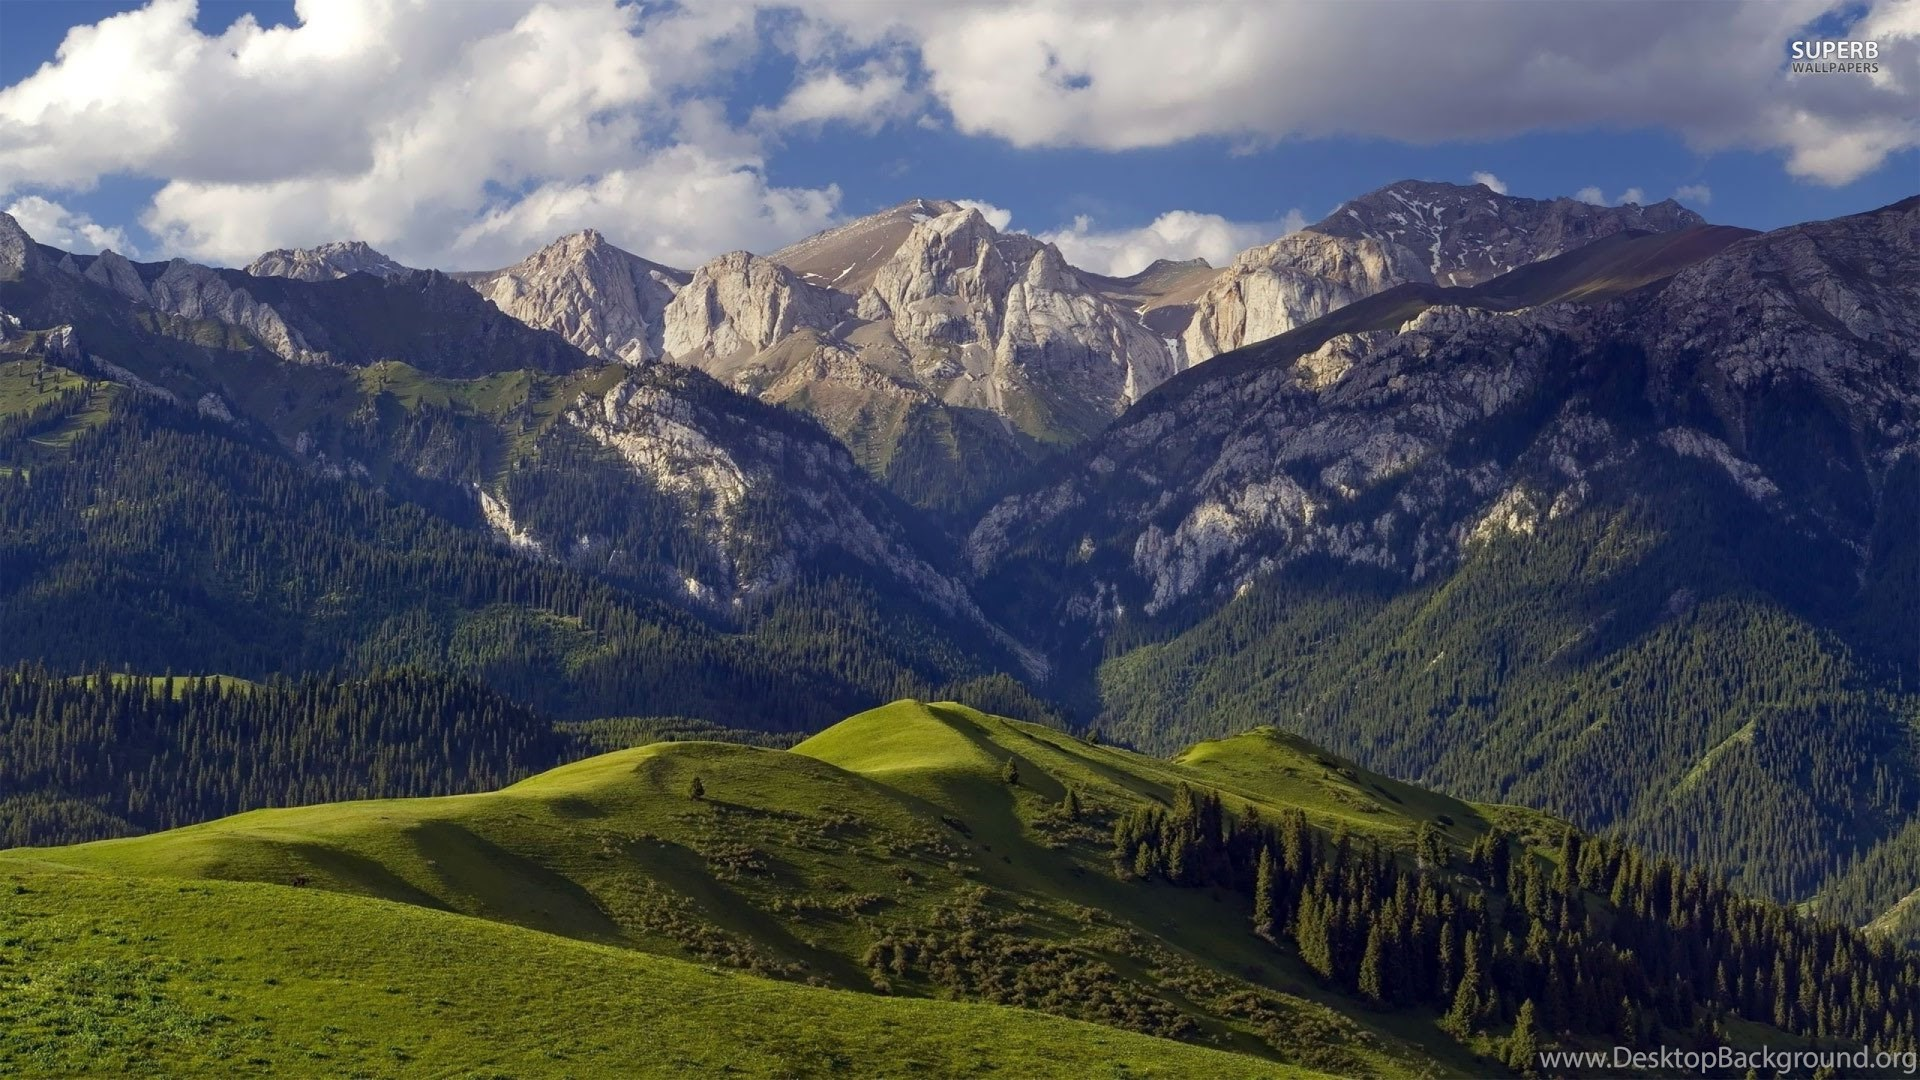 Mountains Wallpapers Cool Wallpapers Hd 1080p Desktop Background